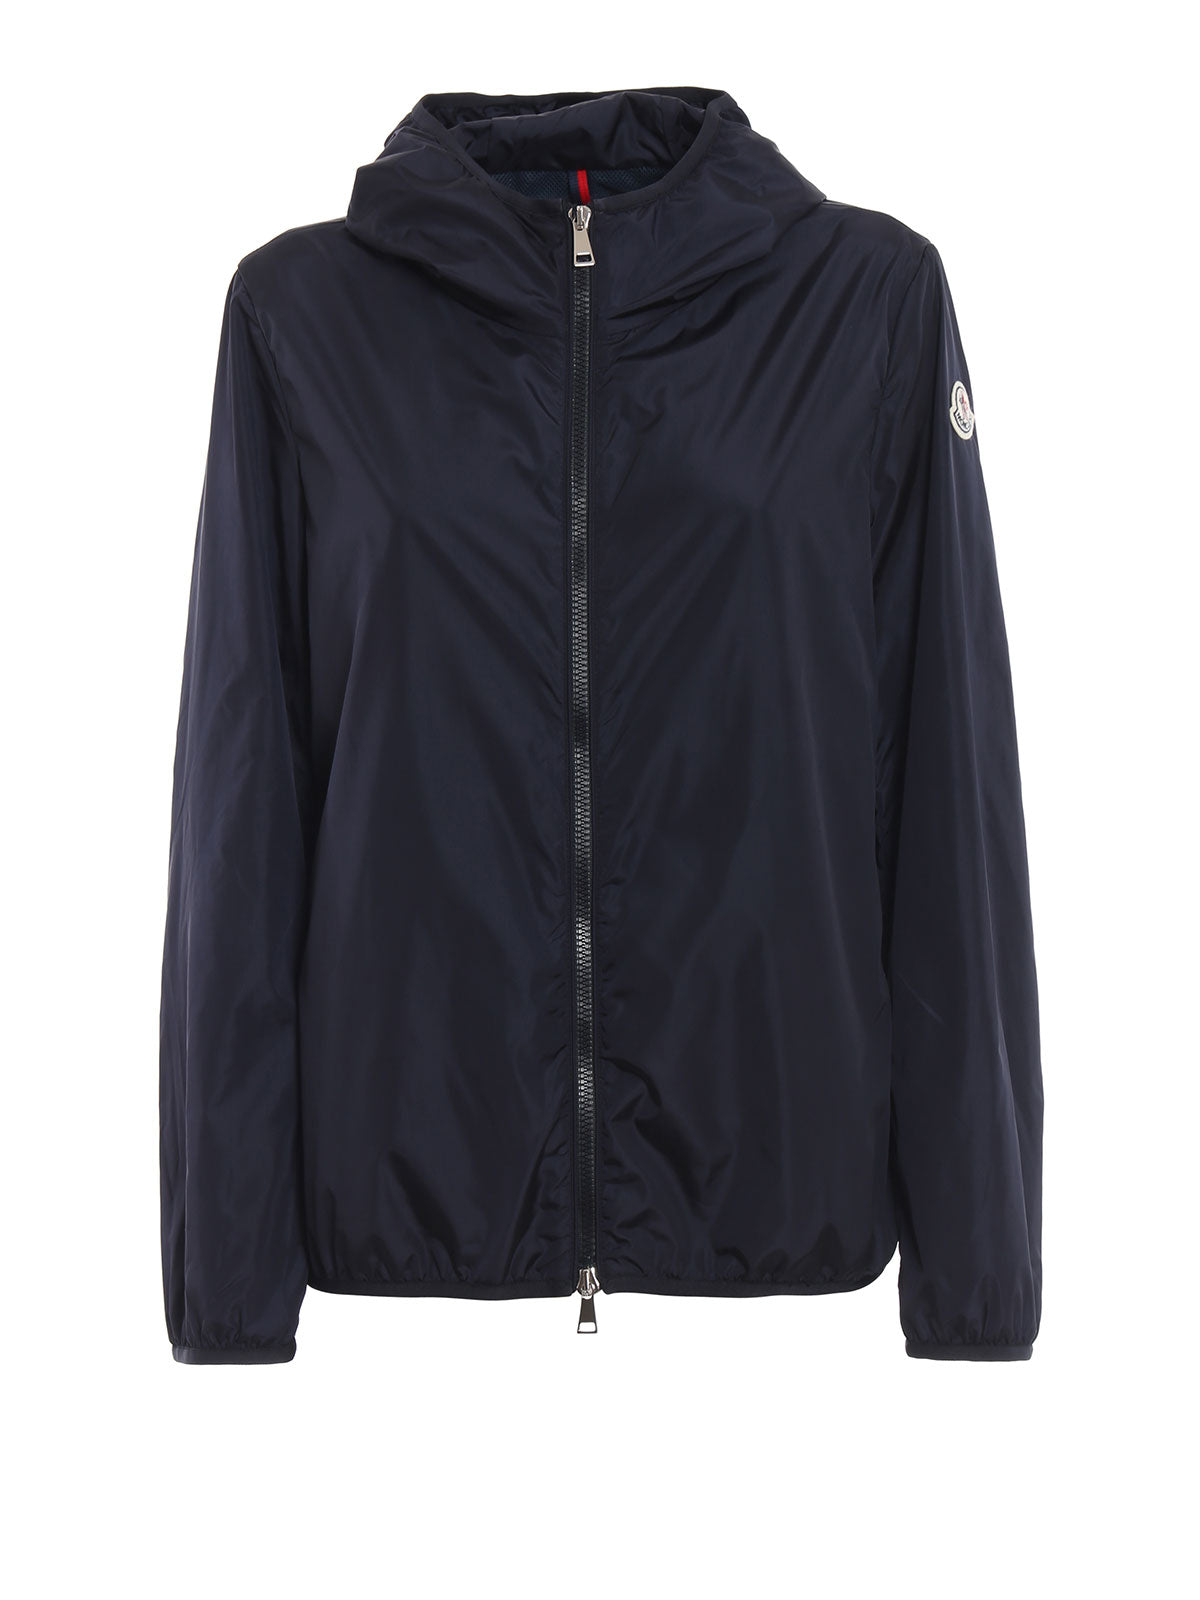 a7a2842b7 Moncler Vive Zipped Jacket in Blue